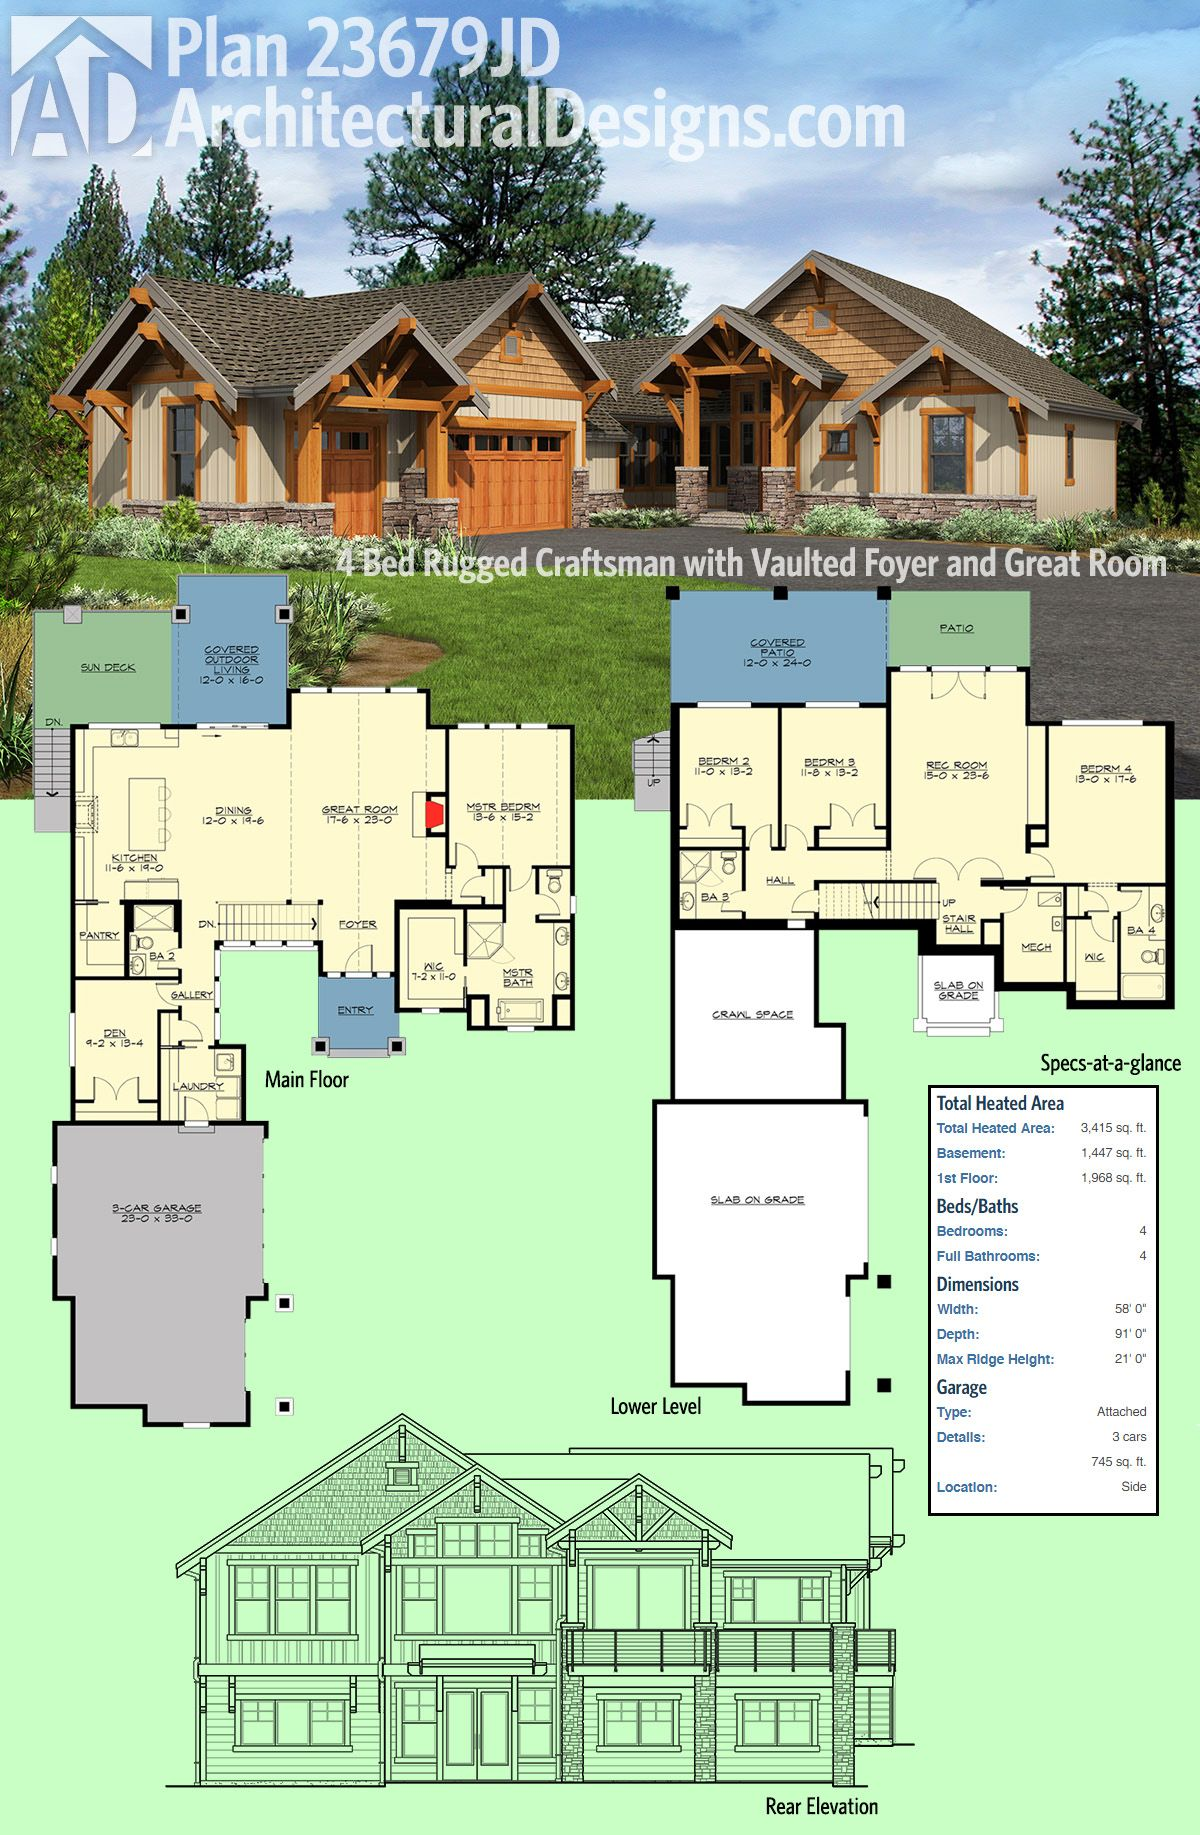 plan 23679jd  4 bed rugged craftsman with vaulted foyer